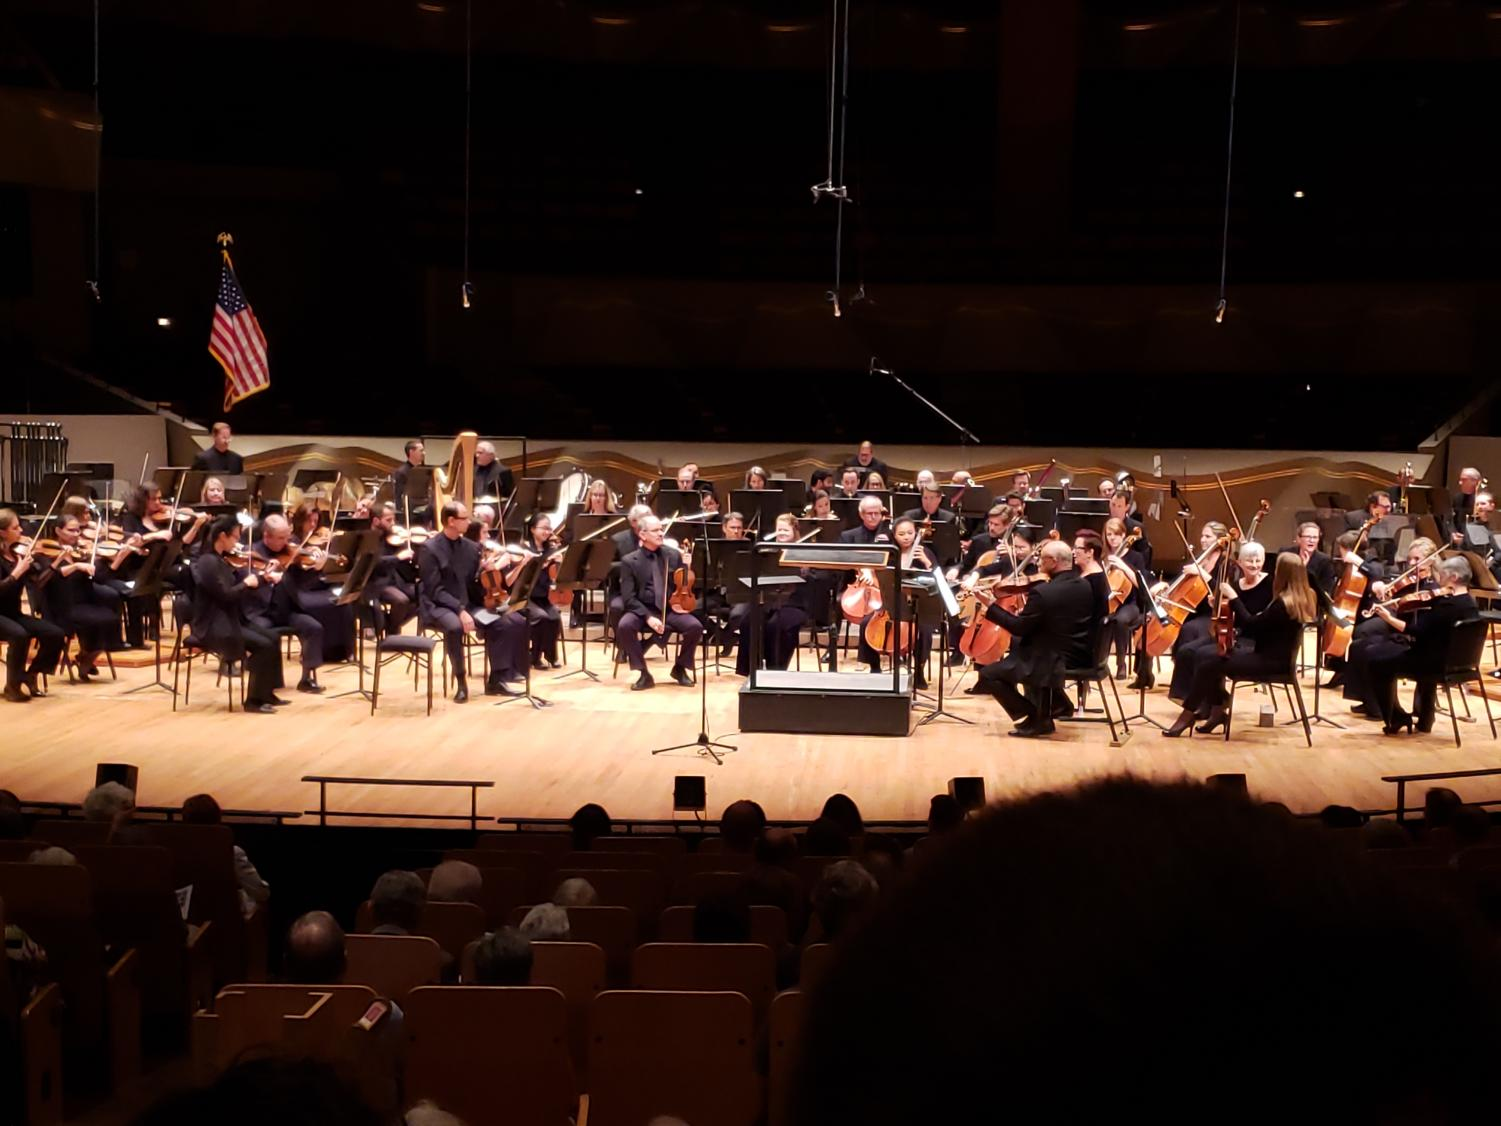 The Colorado Symphony warms up for their performance of  the Mendelssohn Violin Concerto featuring Yumi Hwang-Williams.